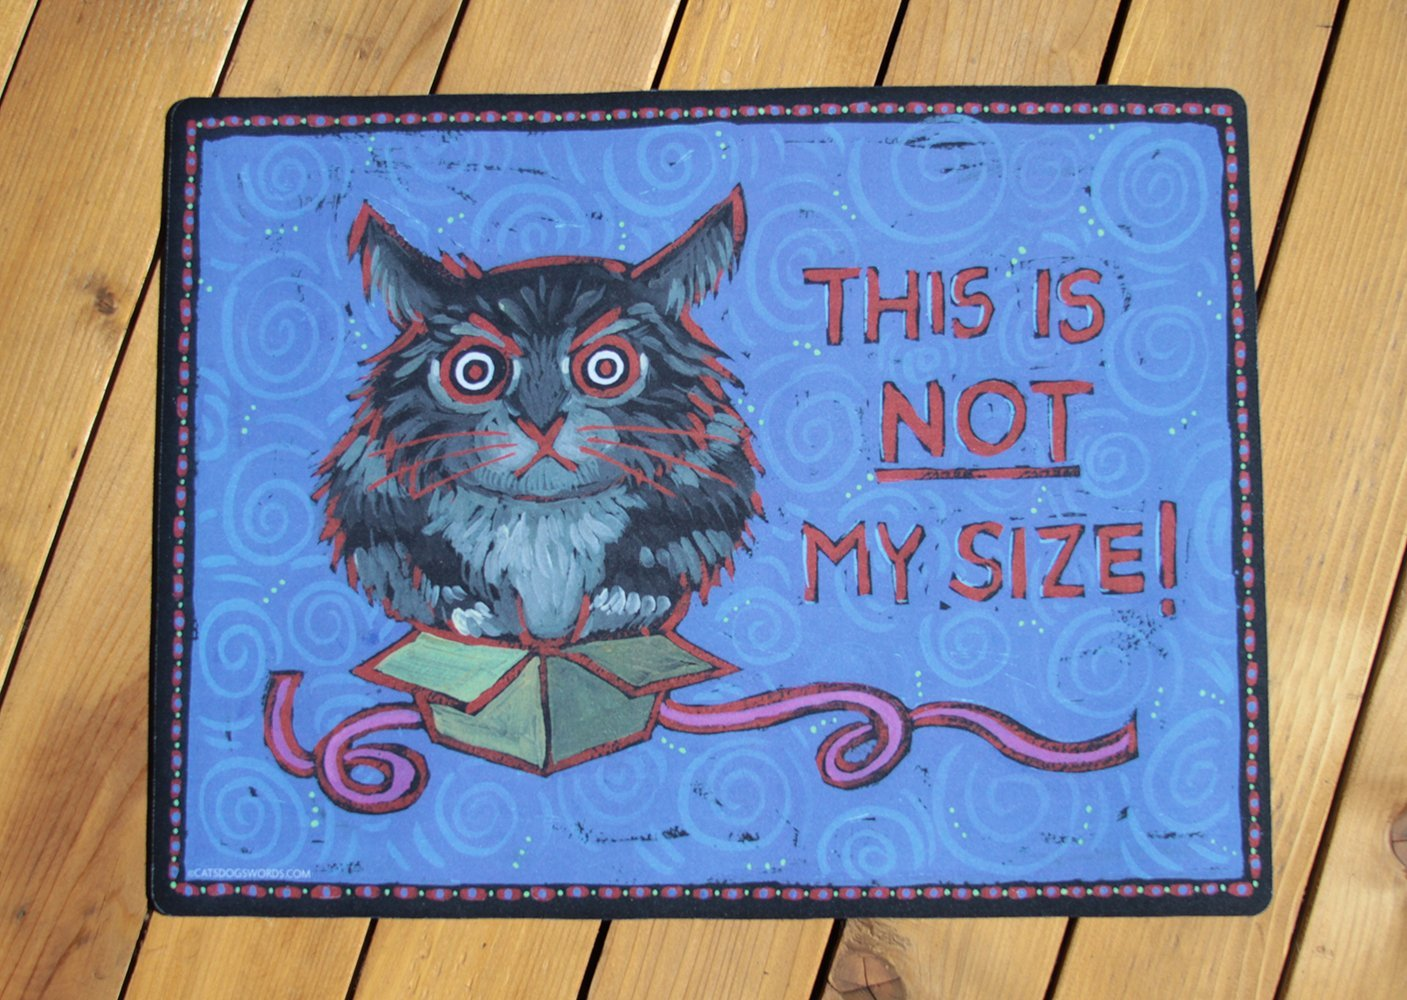 CAT FOOD DISH BOWL MAT ''This Is NOT My Size!'' washable durable CUTE! Made in USA